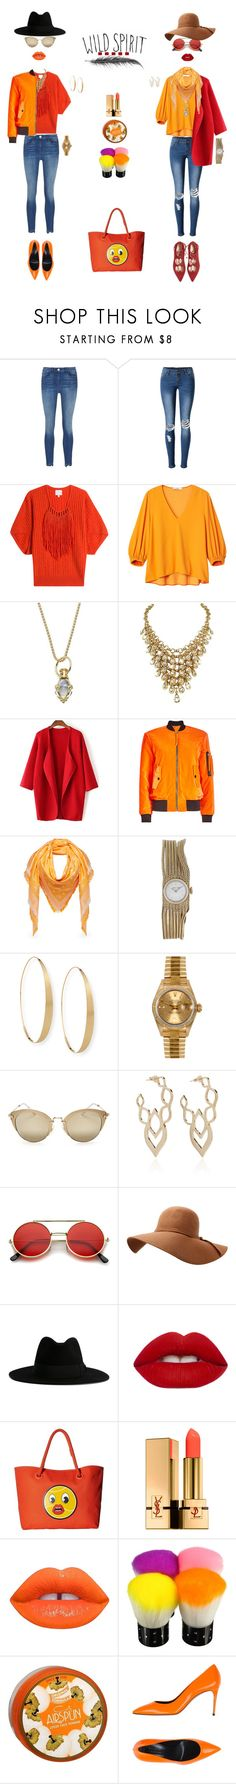 """""""wild.spirit"""" by k-hearts-a ❤ liked on Polyvore featuring WithChic, Claudia Schiffer, TIBI, Temple St. Clair, Moschino, MCM, Rolex, Lana, Miu Miu and Two of Most"""